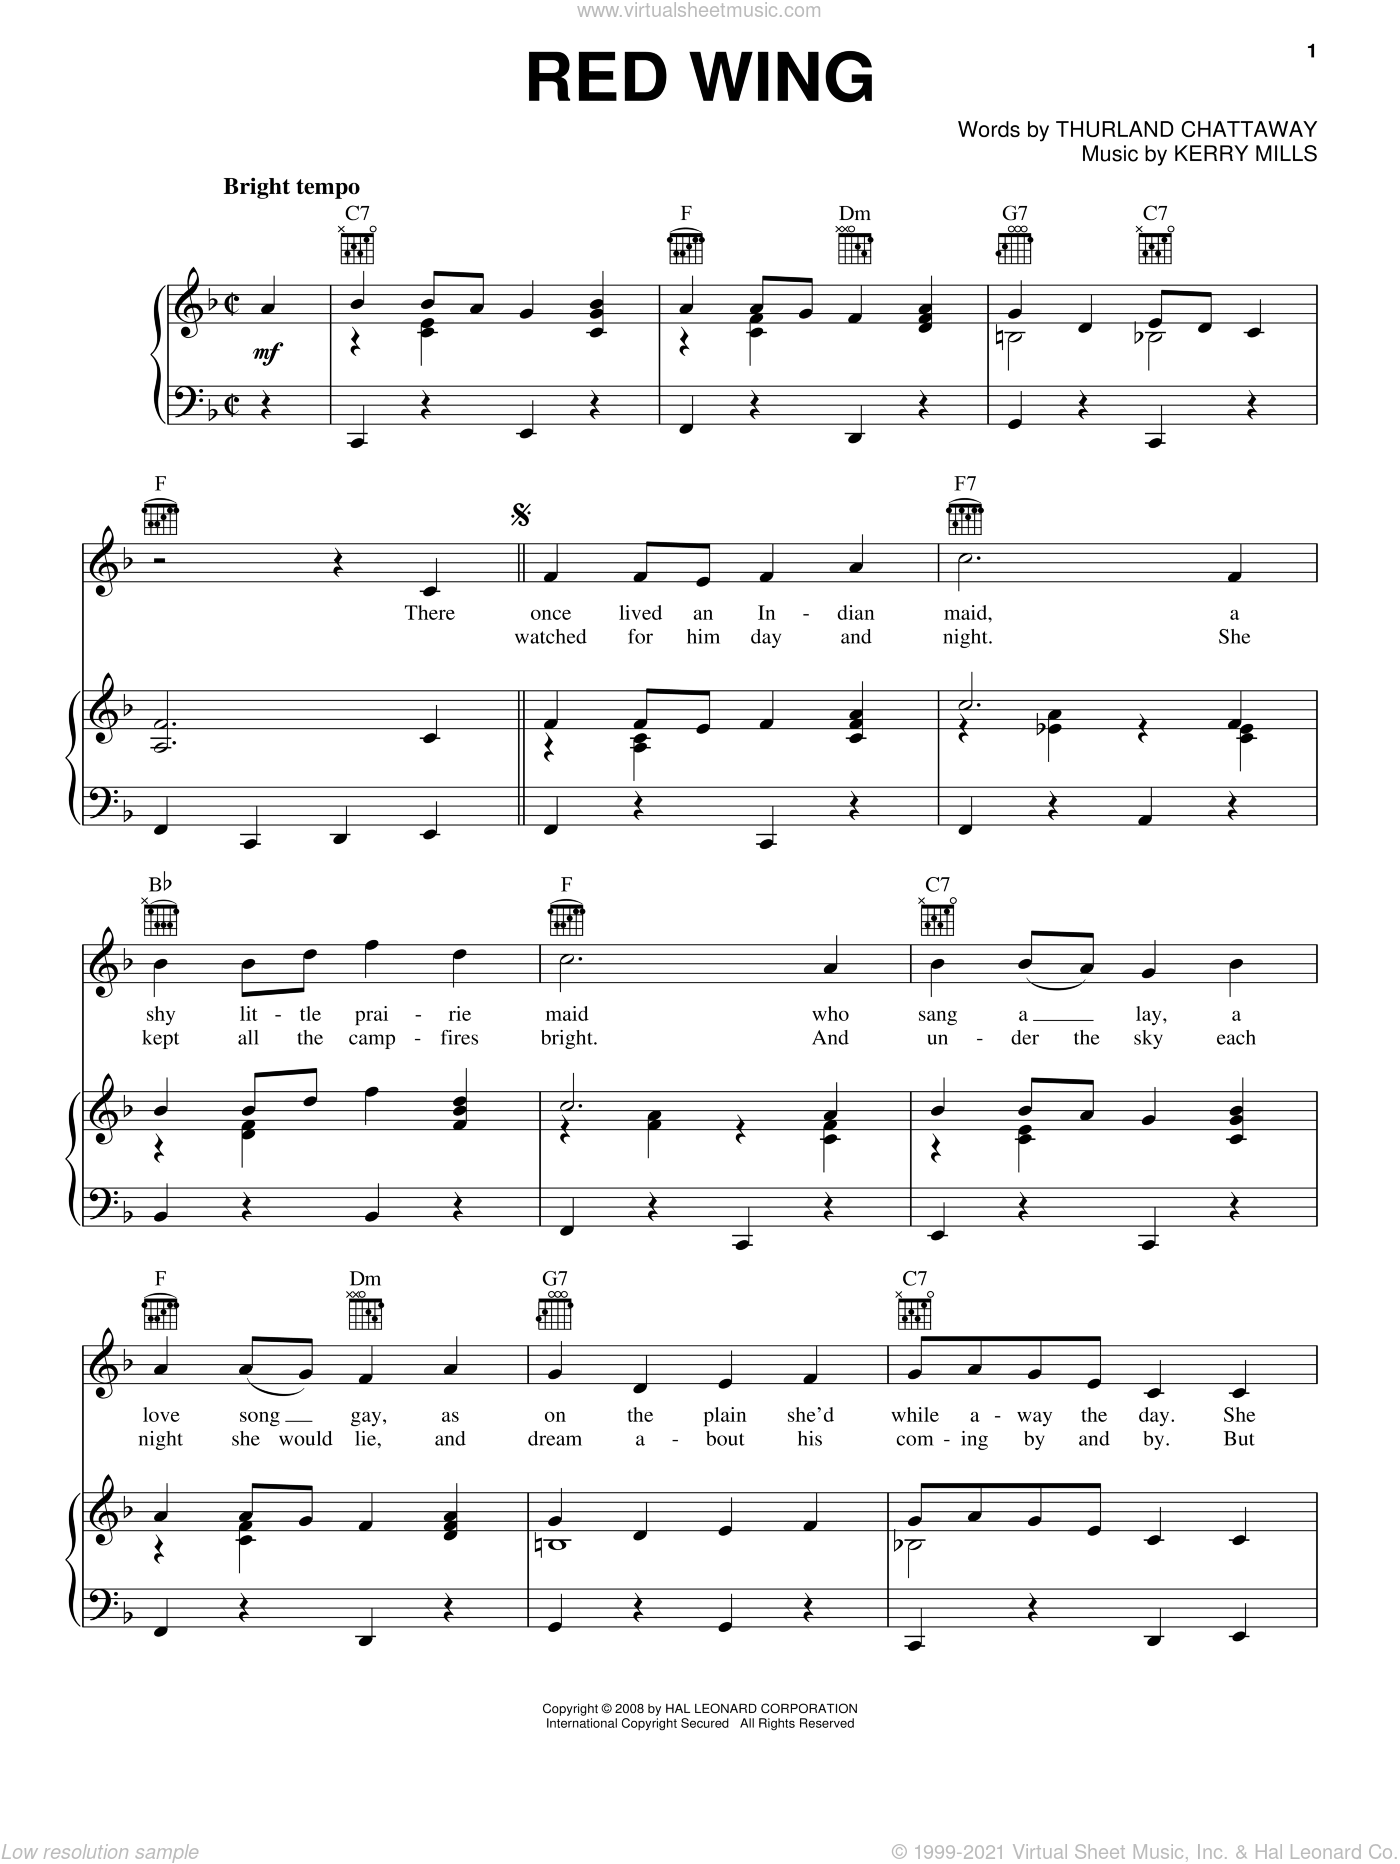 Red Wing sheet music for voice, piano or guitar by Thurland Chattaway and Kerry Mills, intermediate skill level